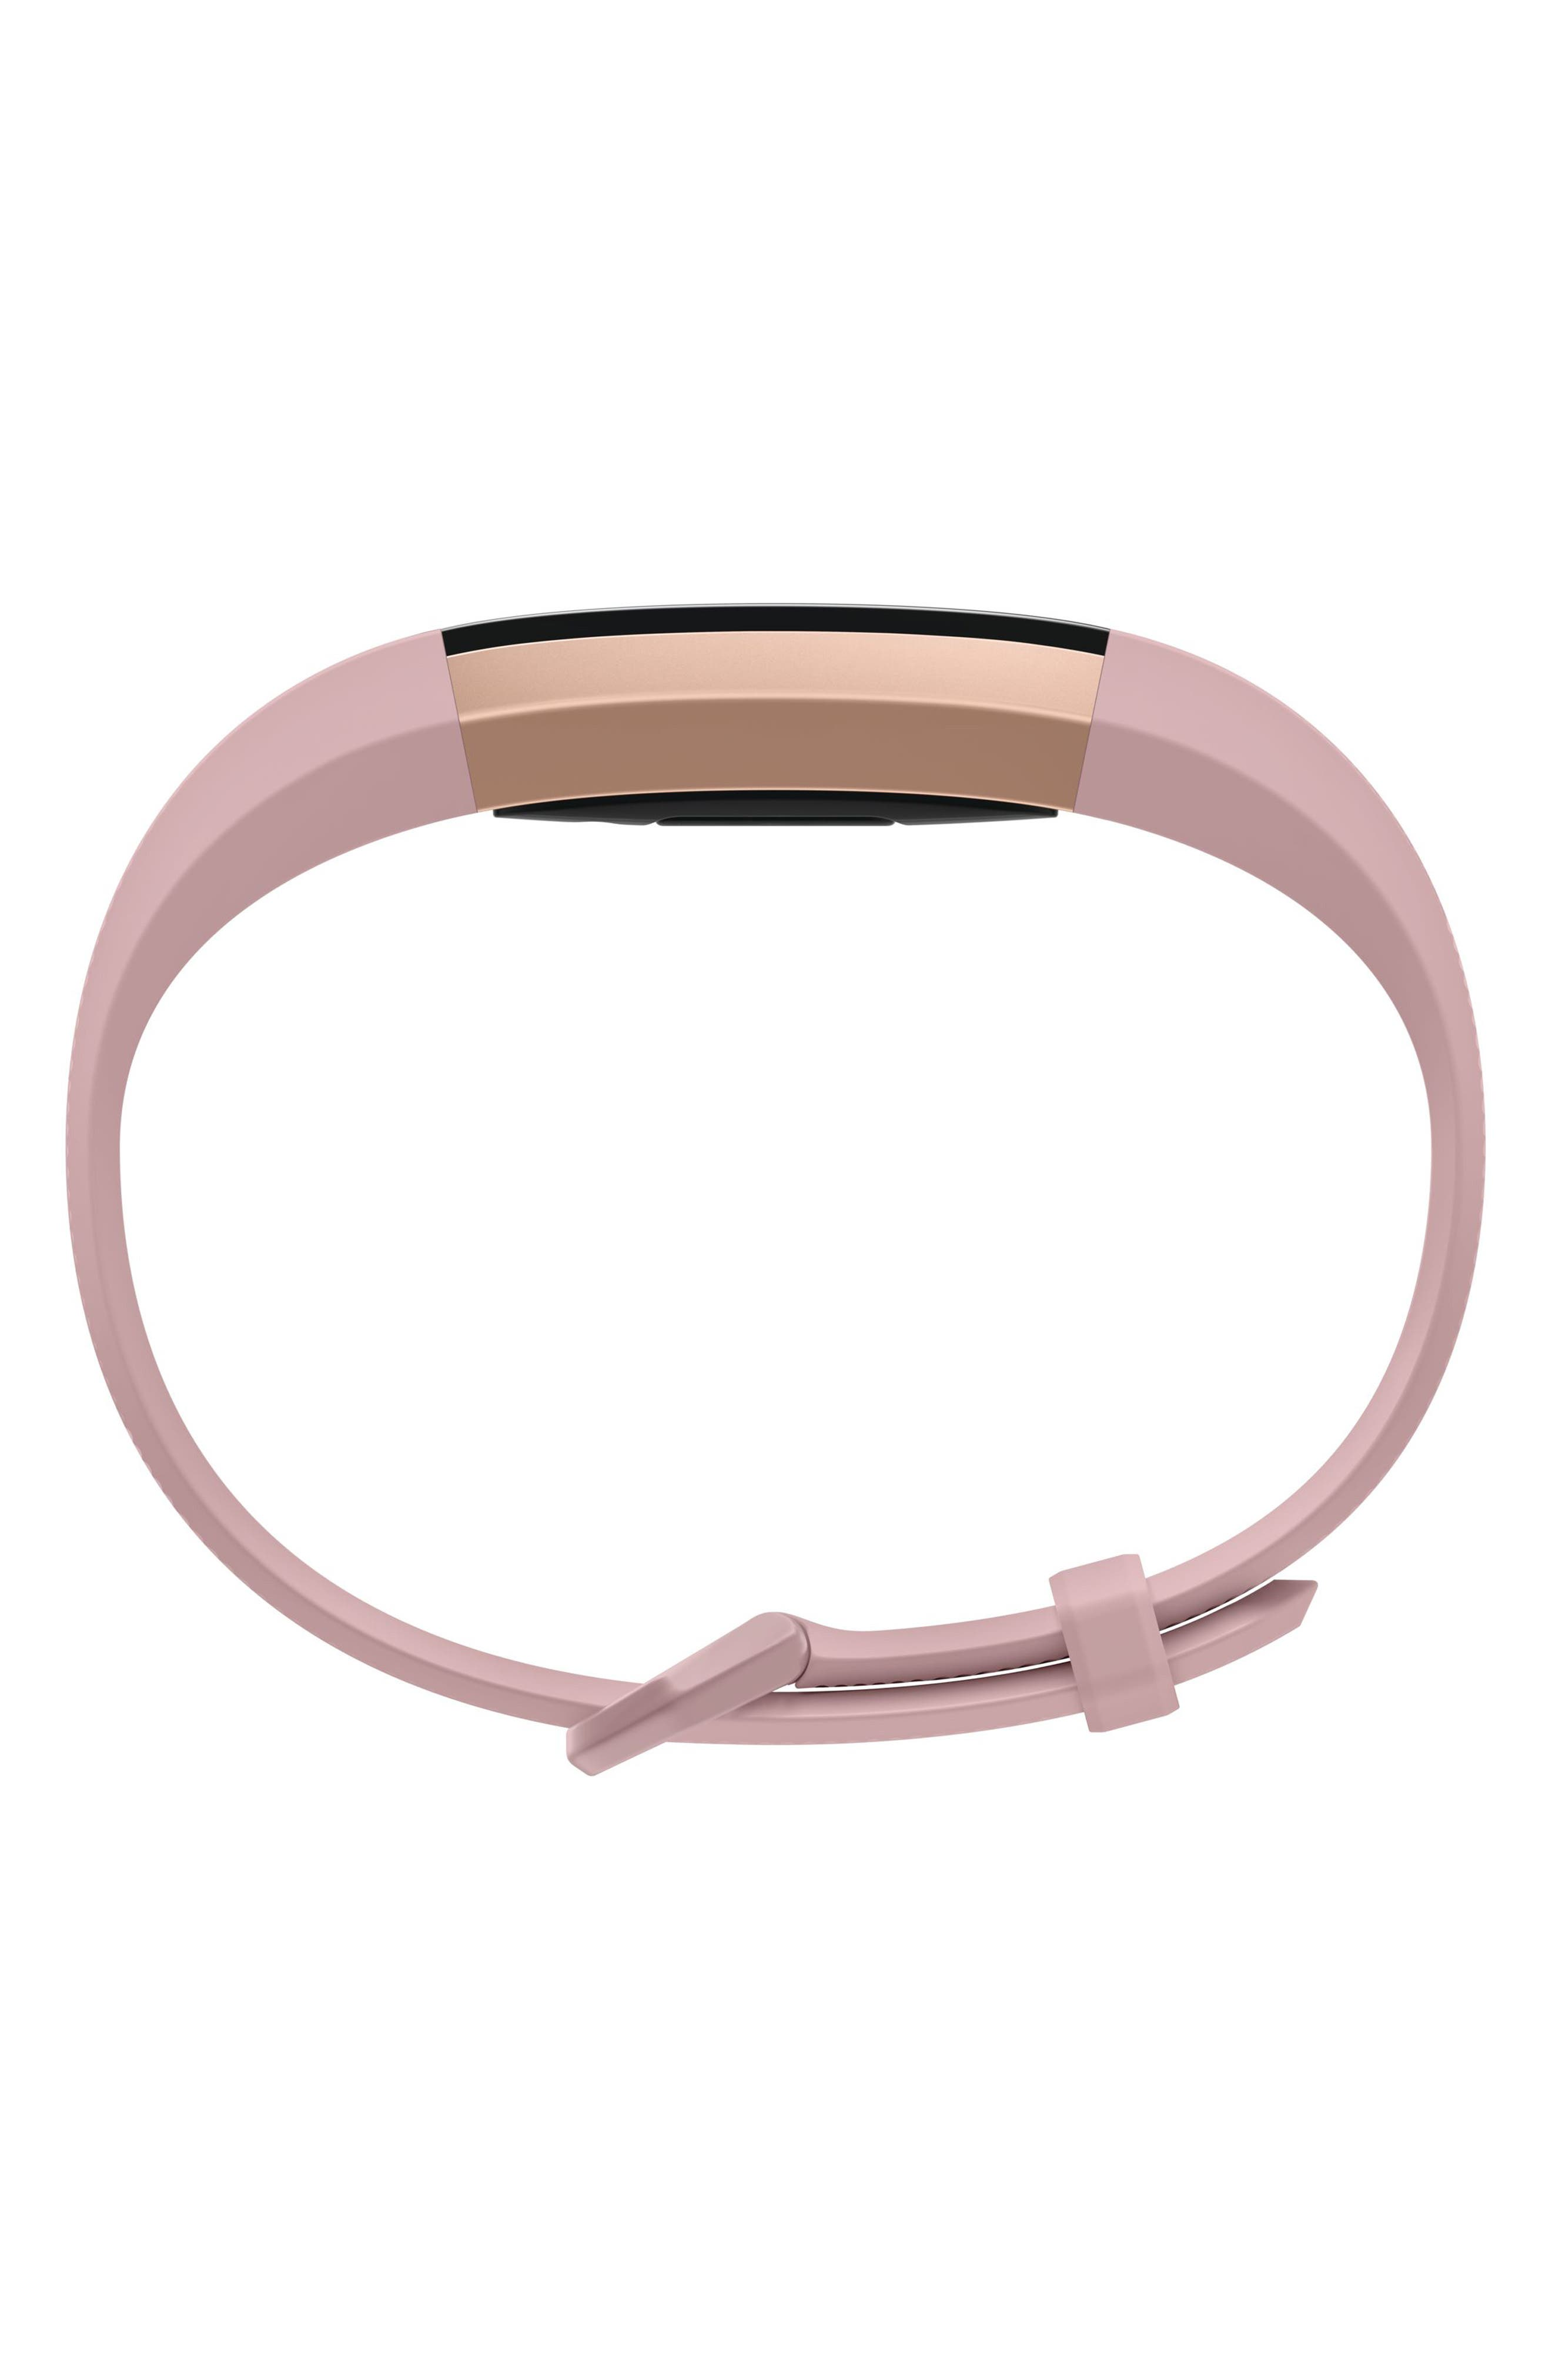 Special Edition Alta HR Wireless Heart Rate and Fitness Tracker,                             Alternate thumbnail 3, color,                             PINK ROSE GOLD